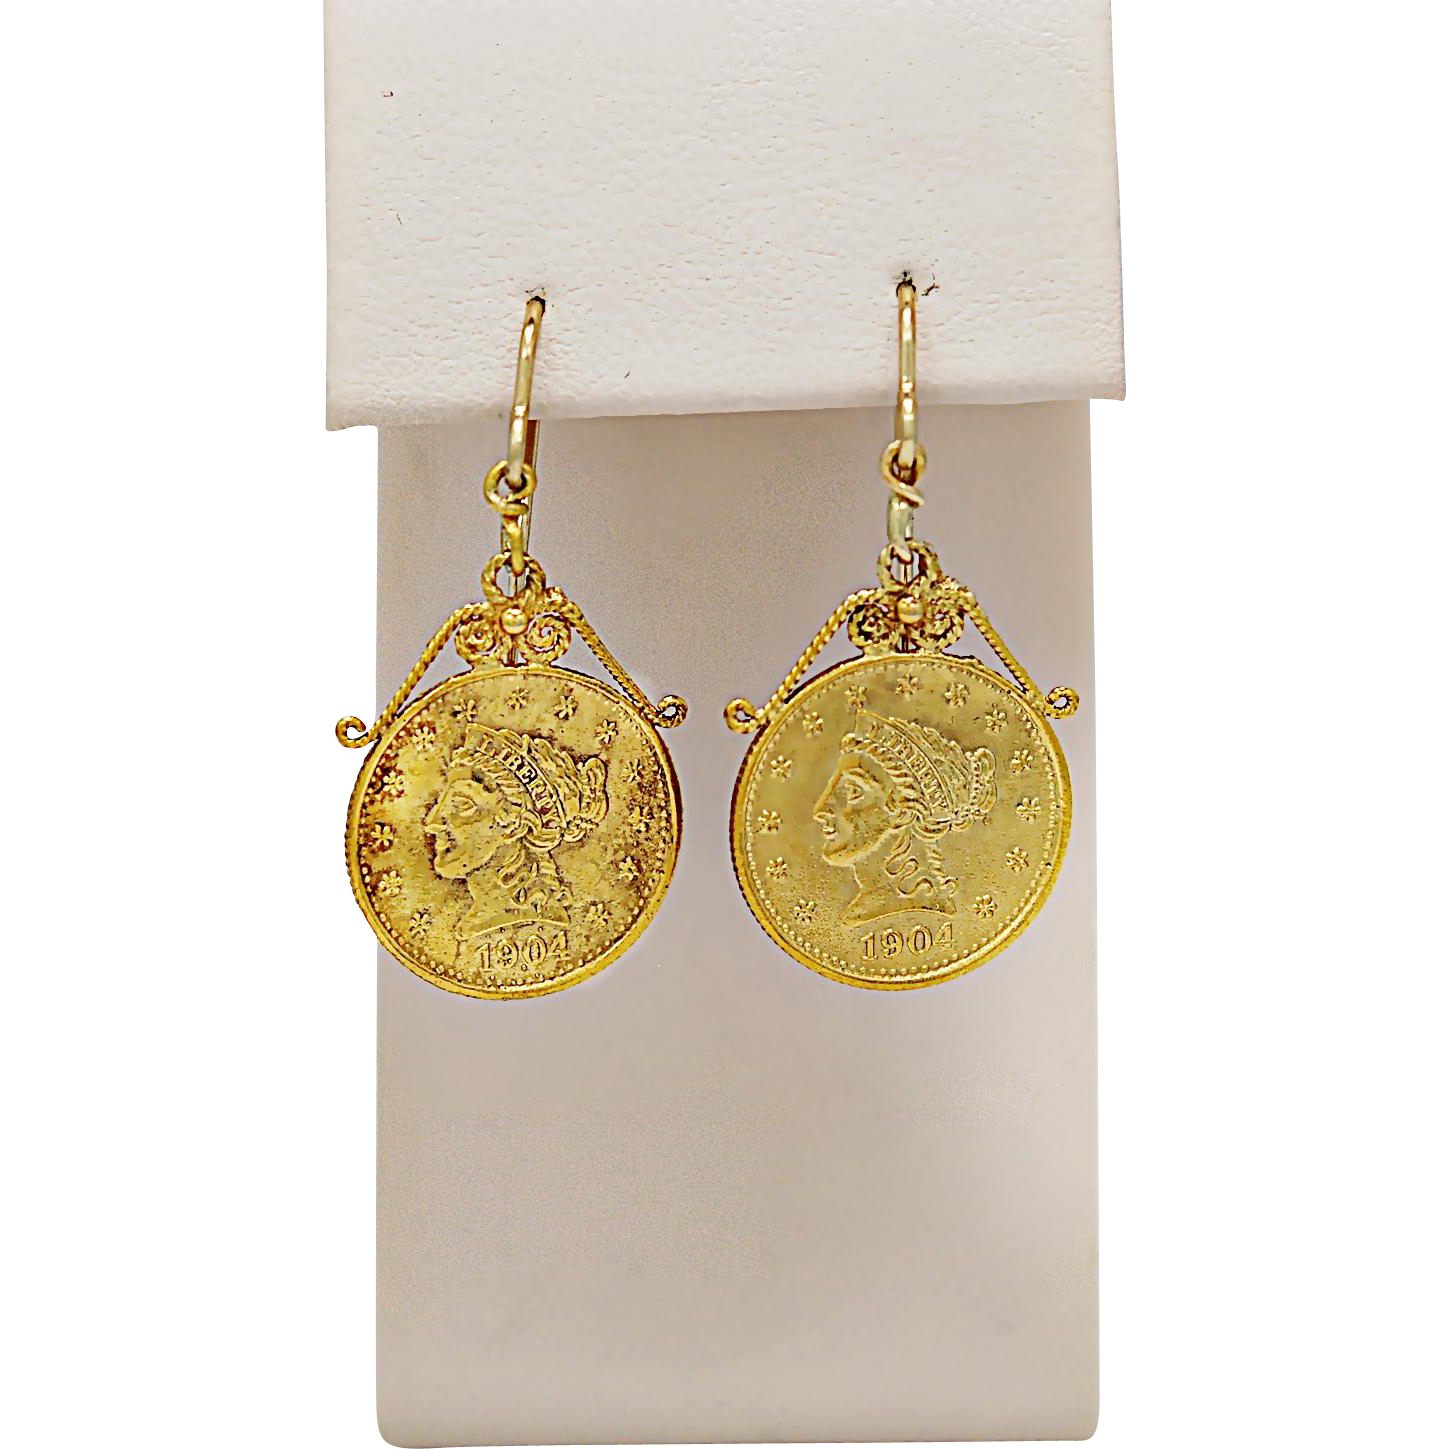 Antique 2-1/2 Dollar Reproduction Gold Coin Earrings